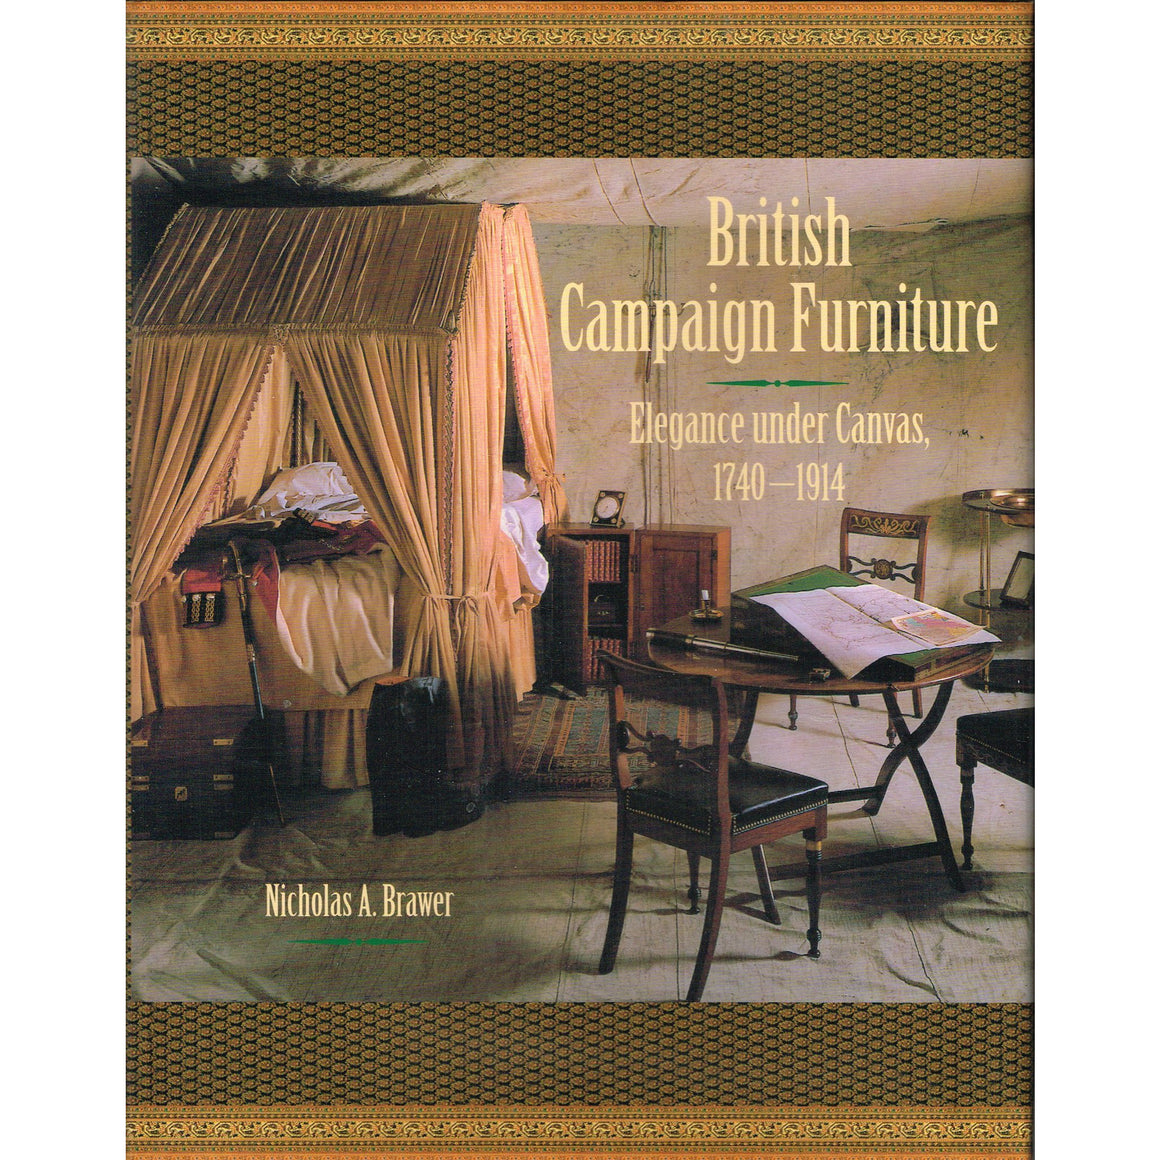 British Campaign Furniture